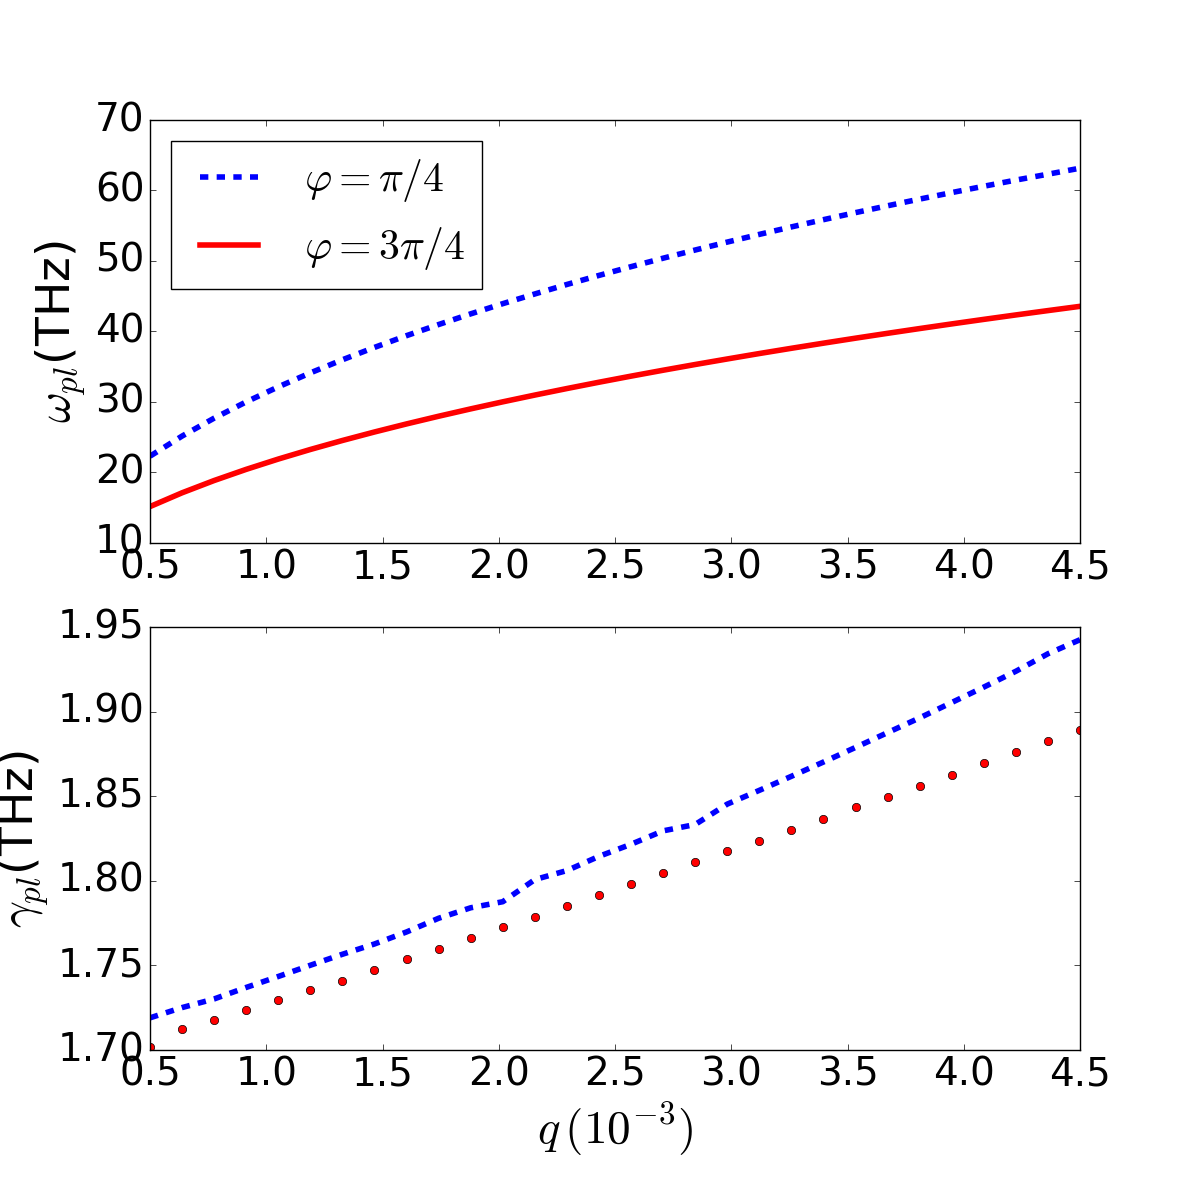 (Color on-line.) Plasmon dispersion relation (top panel) and plasmon lifetime (bottom panel) as function of the dimensionless wave number (multiplied by